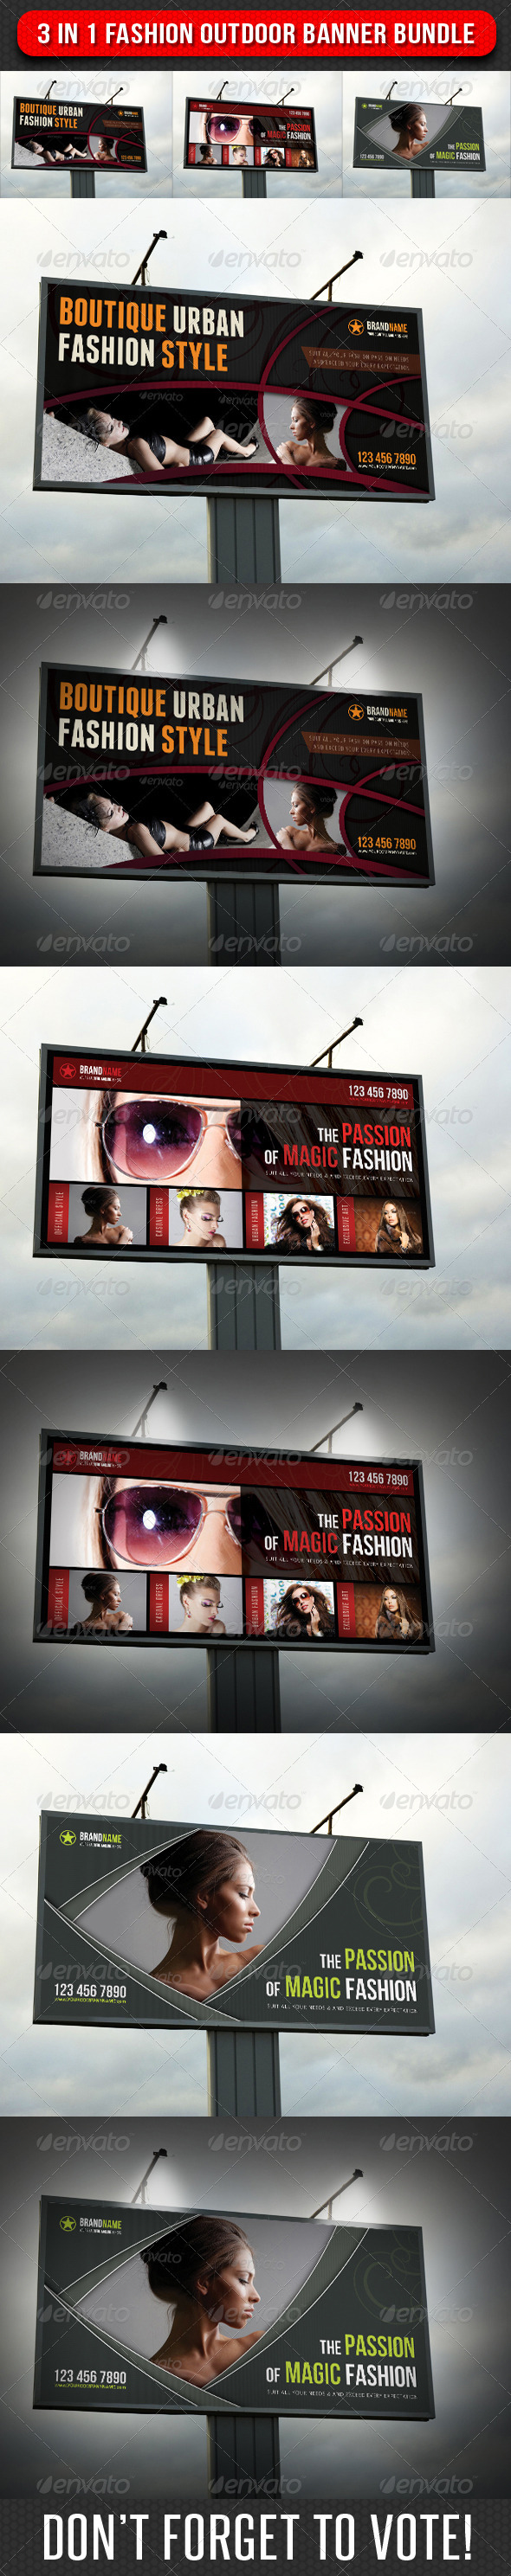 GraphicRiver 3 in 1 Fashion Outdoor Banner Bundle 02 6747756